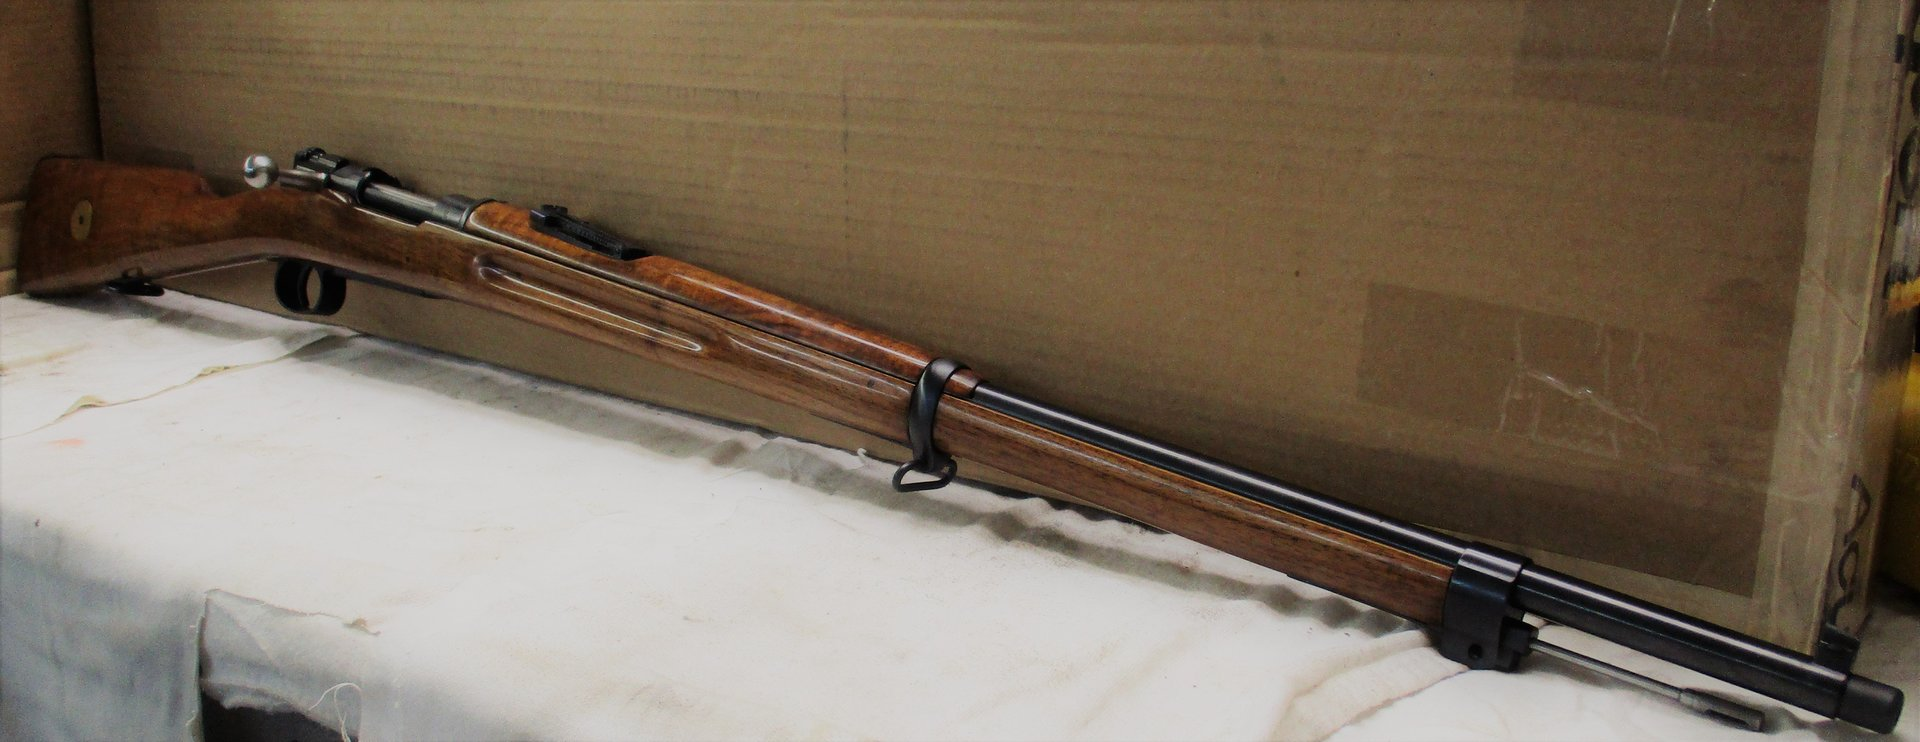 Mauser in Deluxe Blue